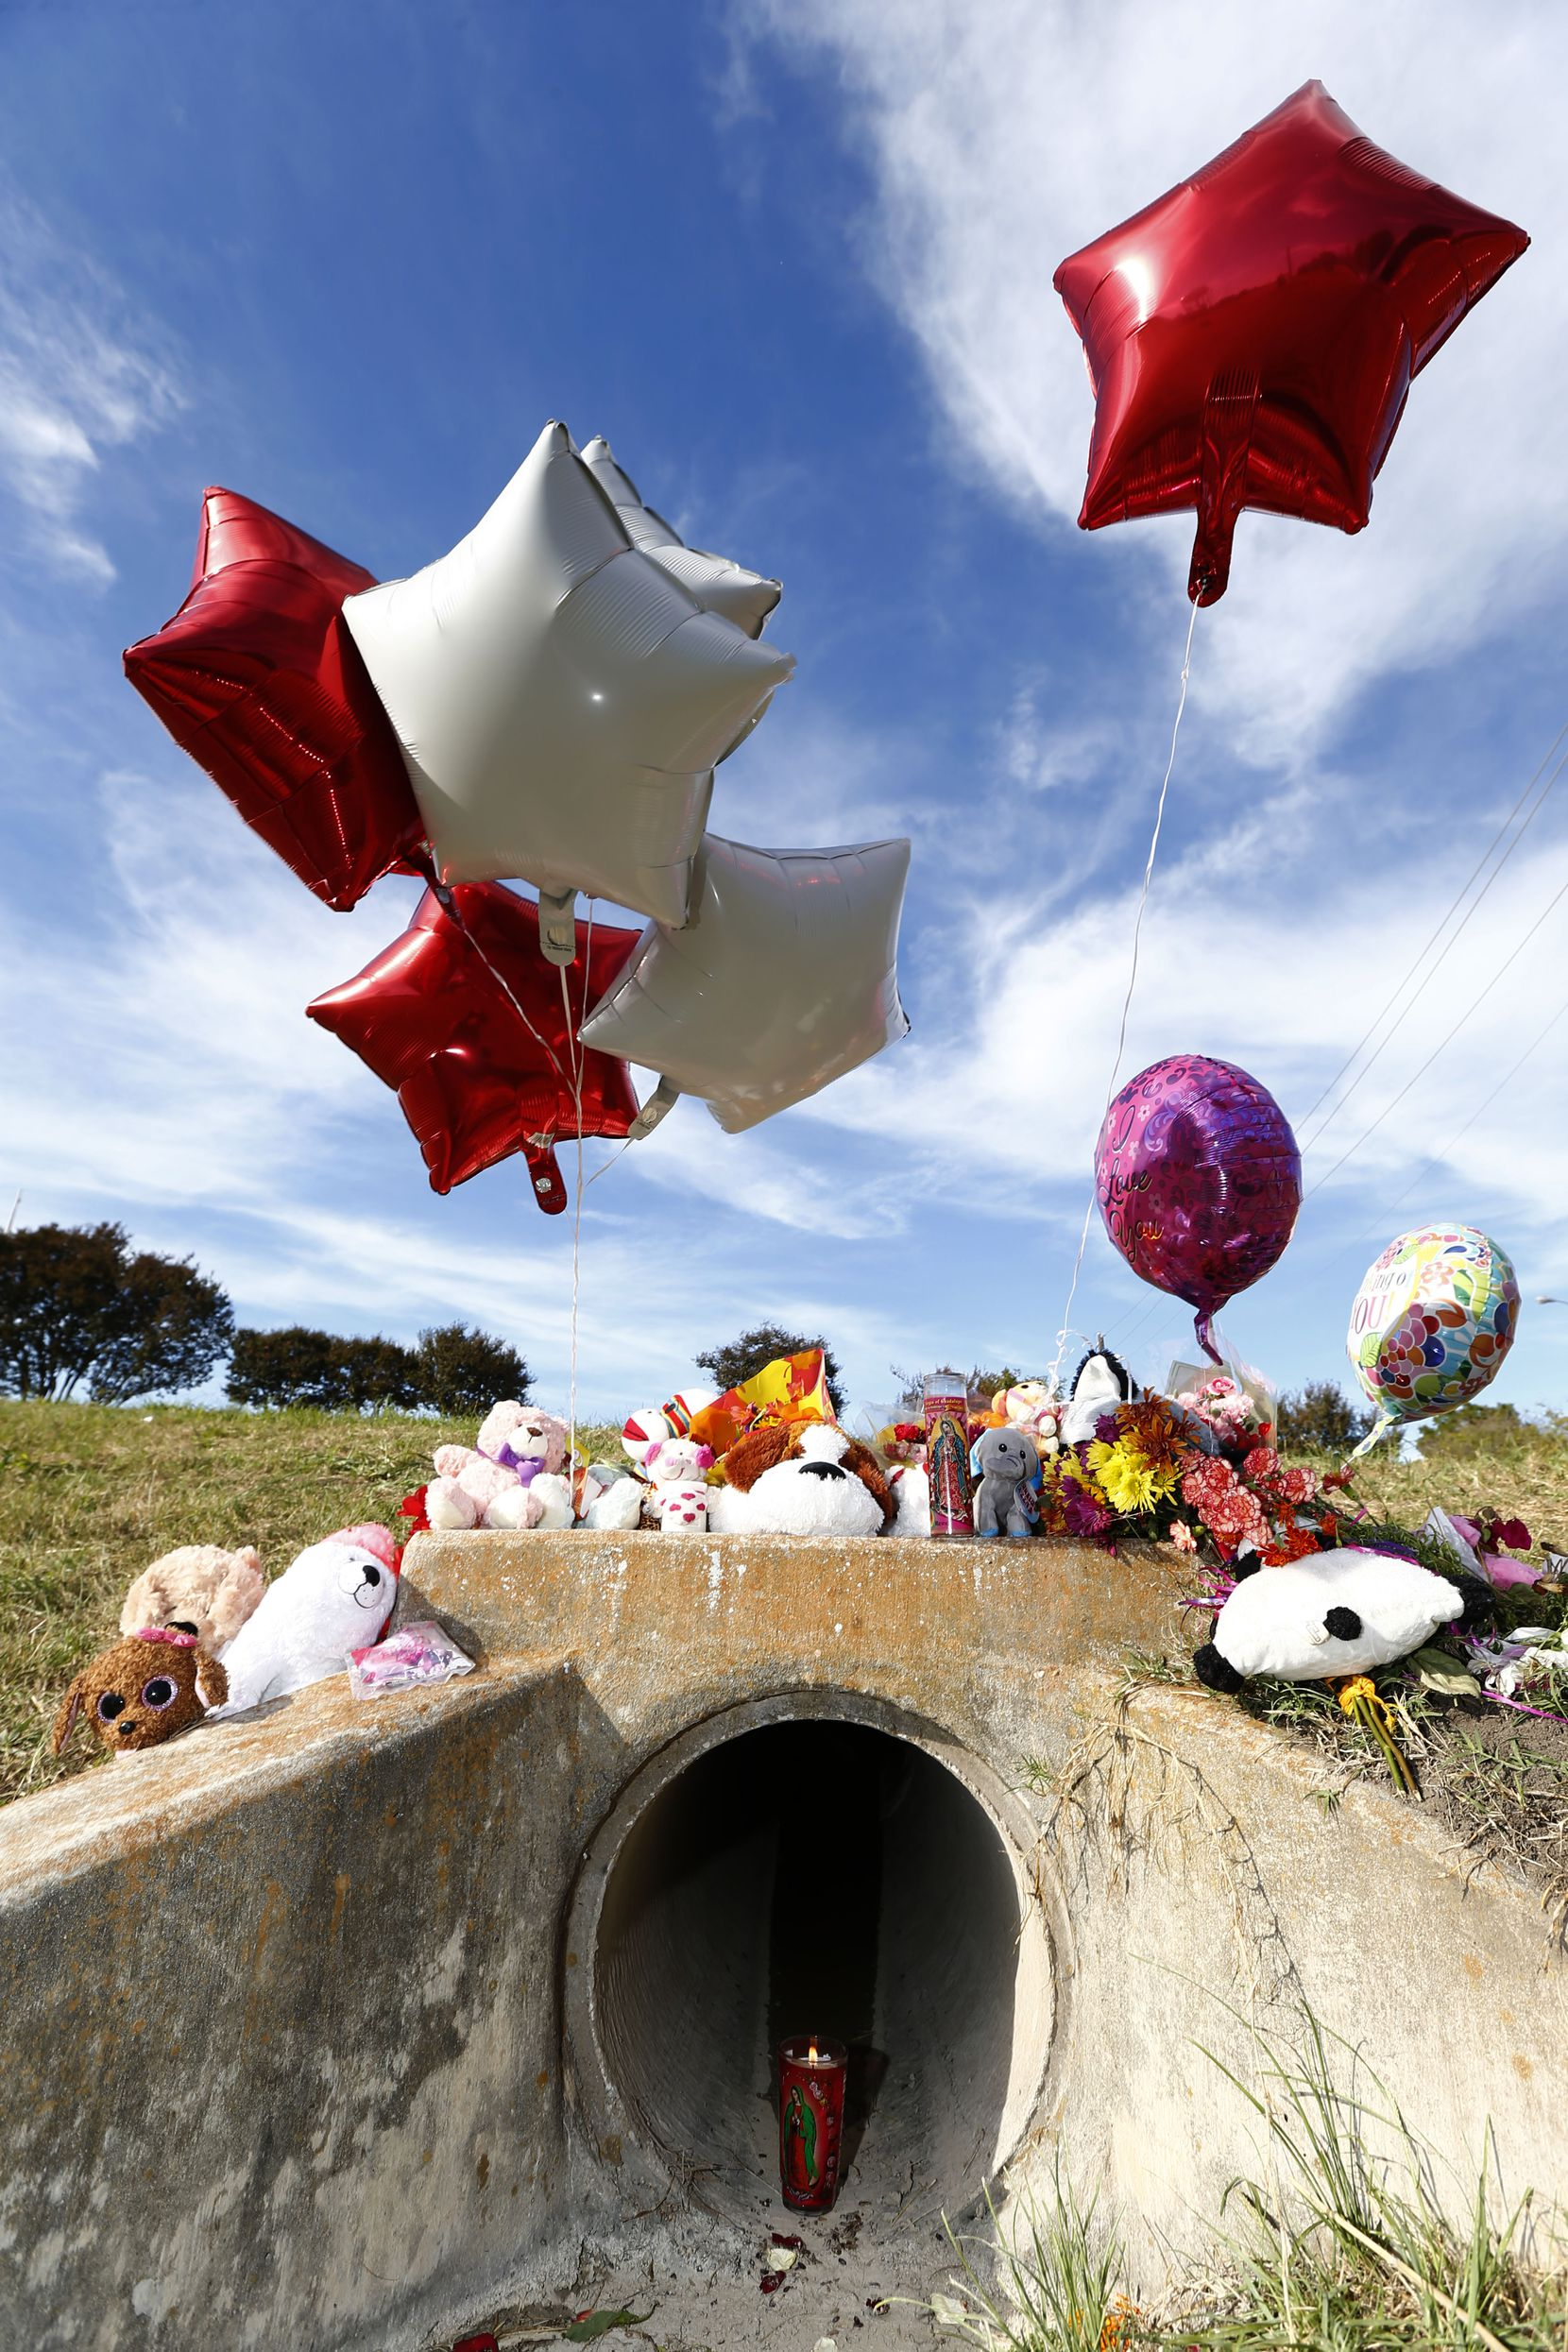 A memorial in the area where the body of a small child was found Sunday morning during the search for a missing 3-year-old girl.